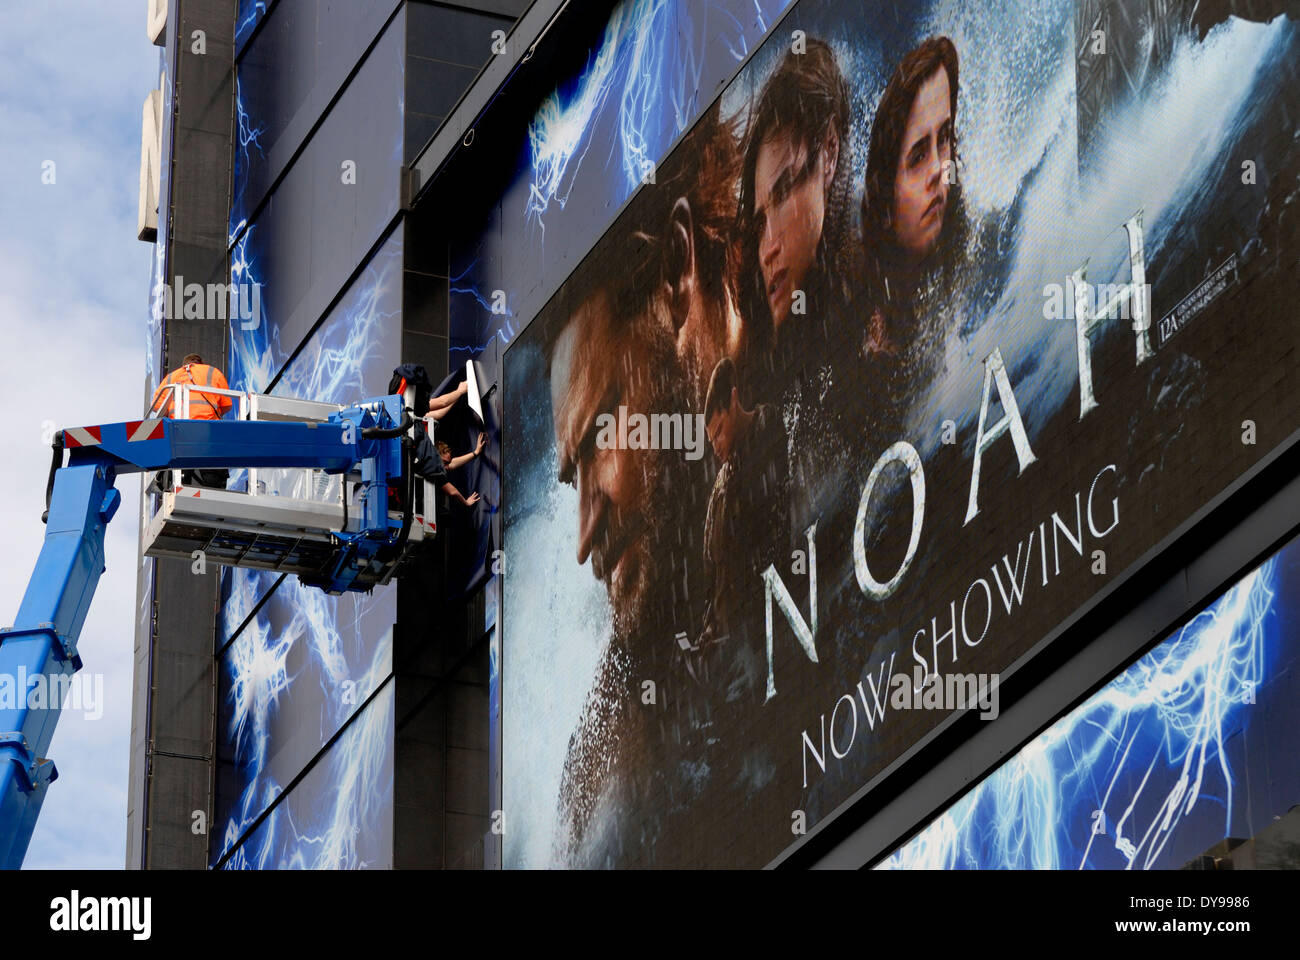 London, England, UK. Odeon Cinema, Leicester Square. Men sticking posters to facade for Noah film, 2014 - Stock Image